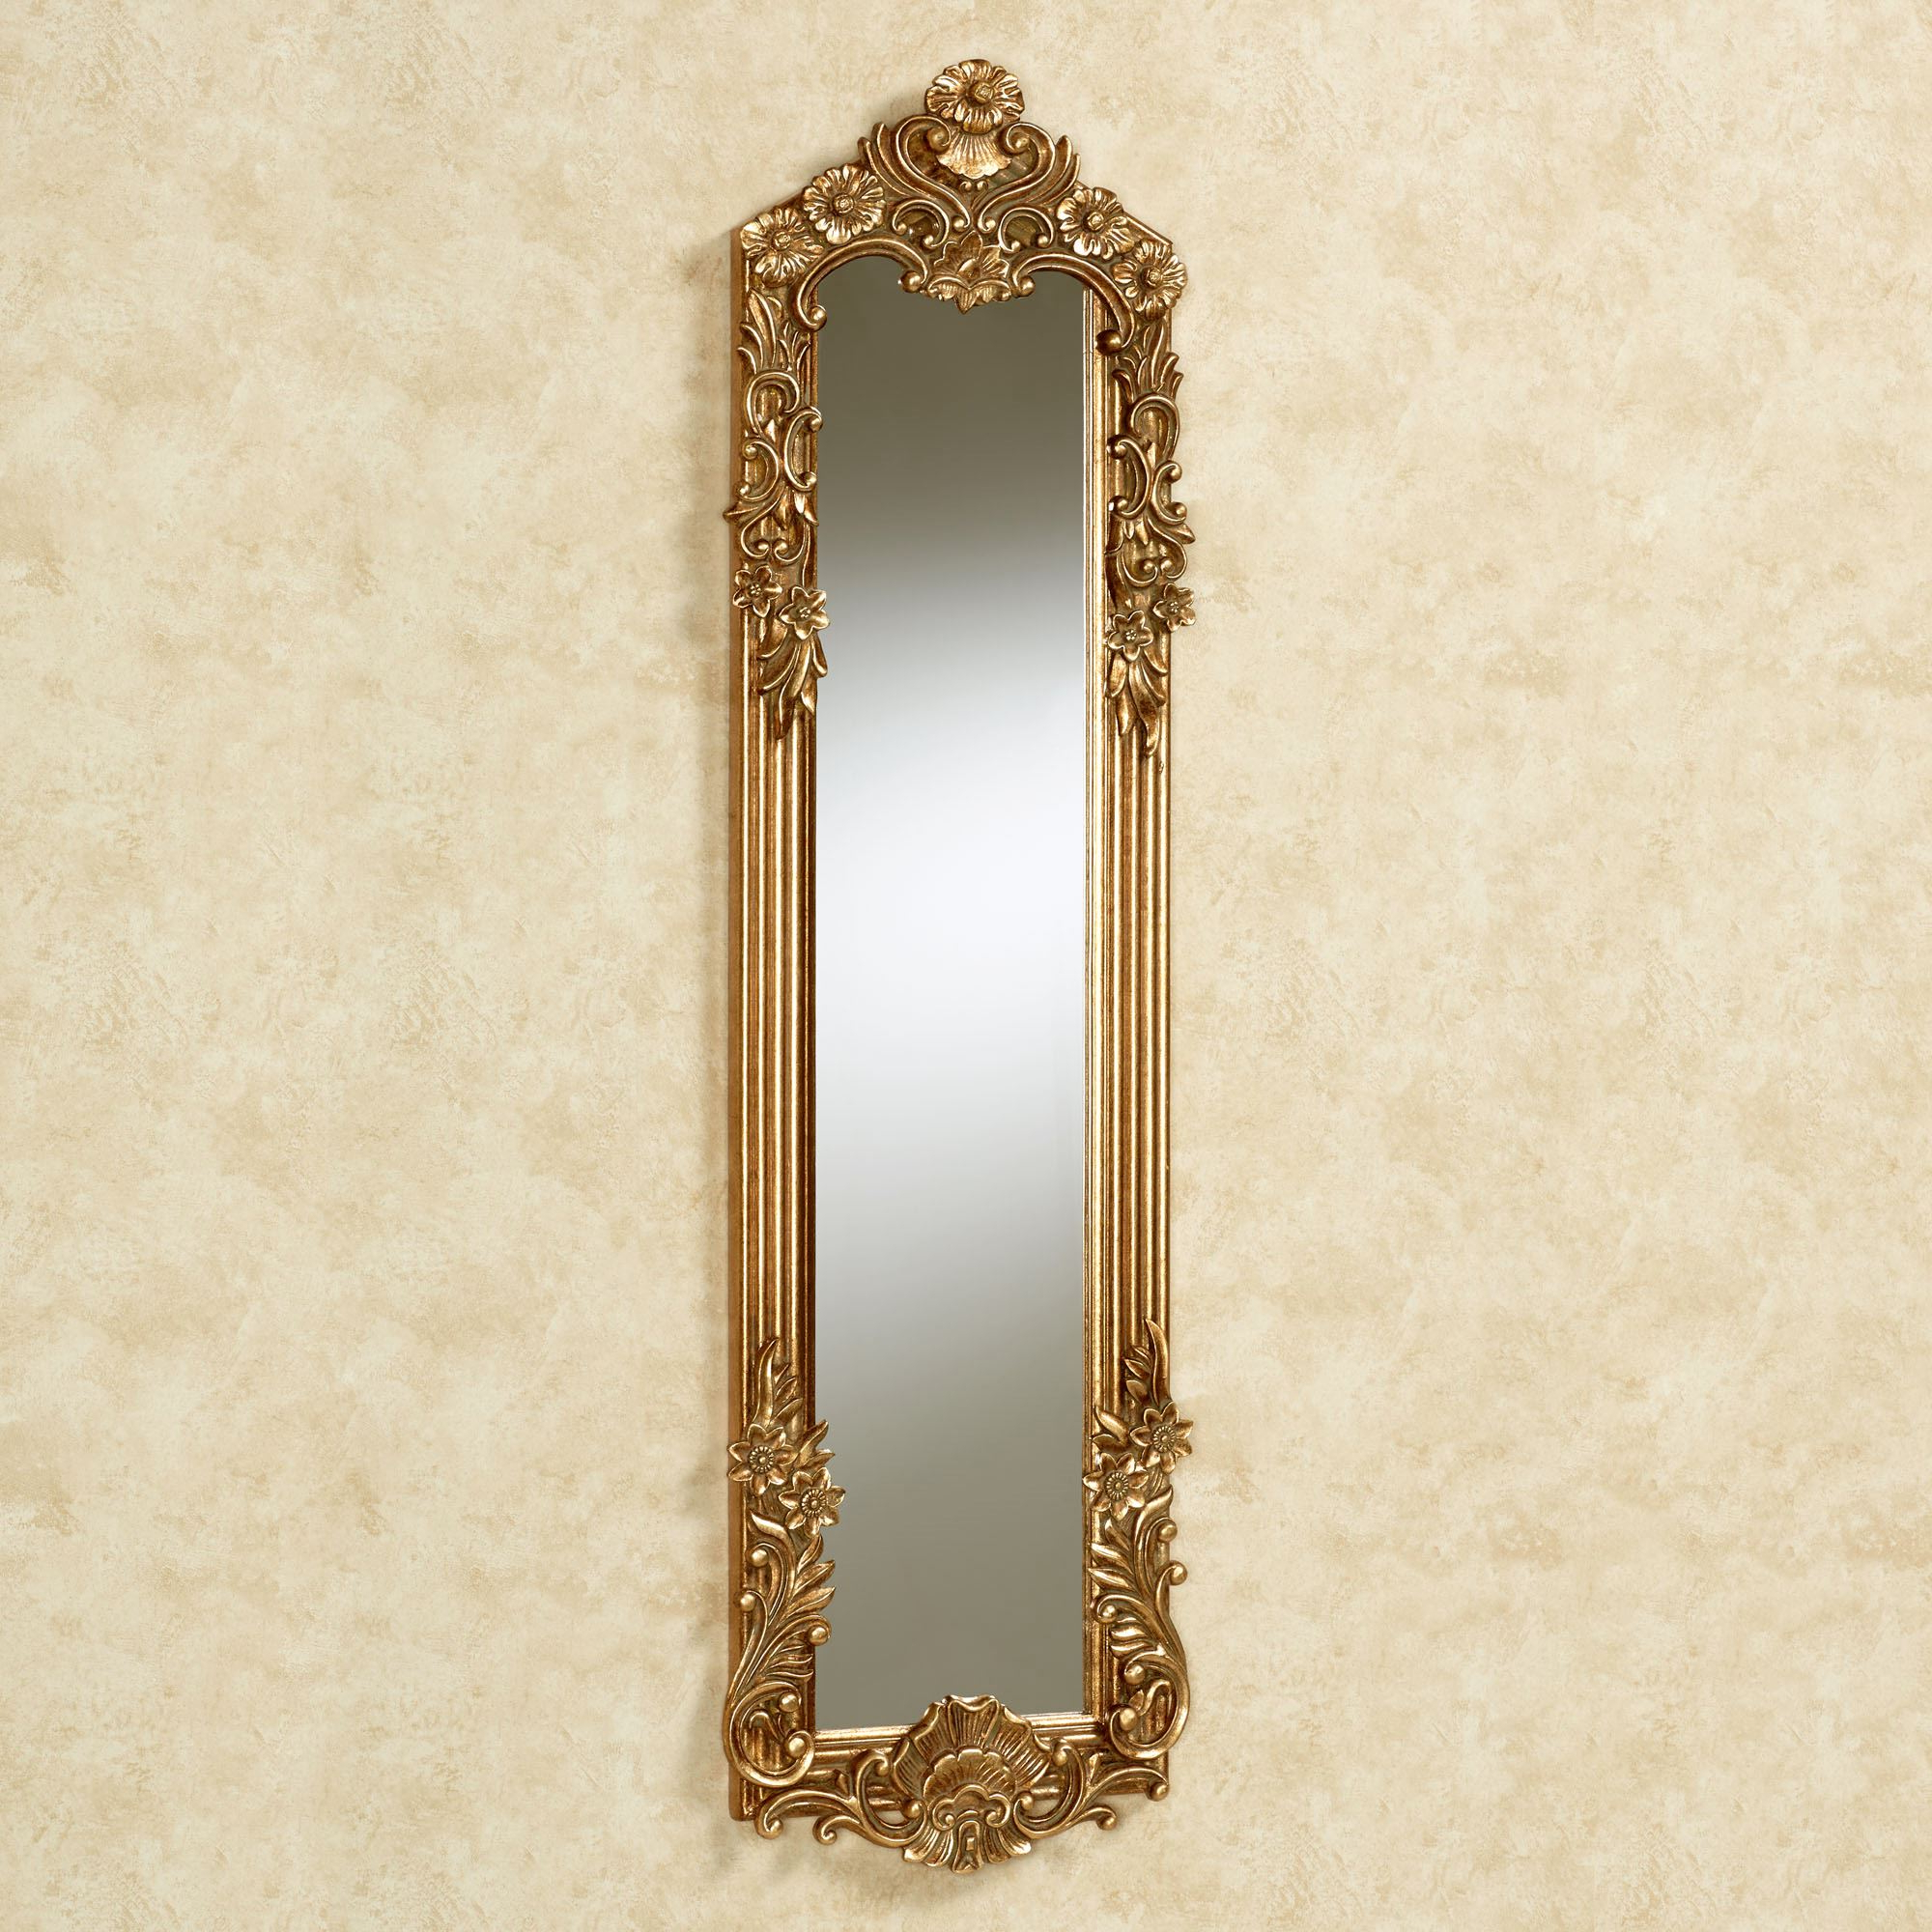 Gadsden Dark Gold Small Floral Wall Mirror Panel Throughout Most Popular Small Gold Wall Mirrors (Gallery 9 of 20)